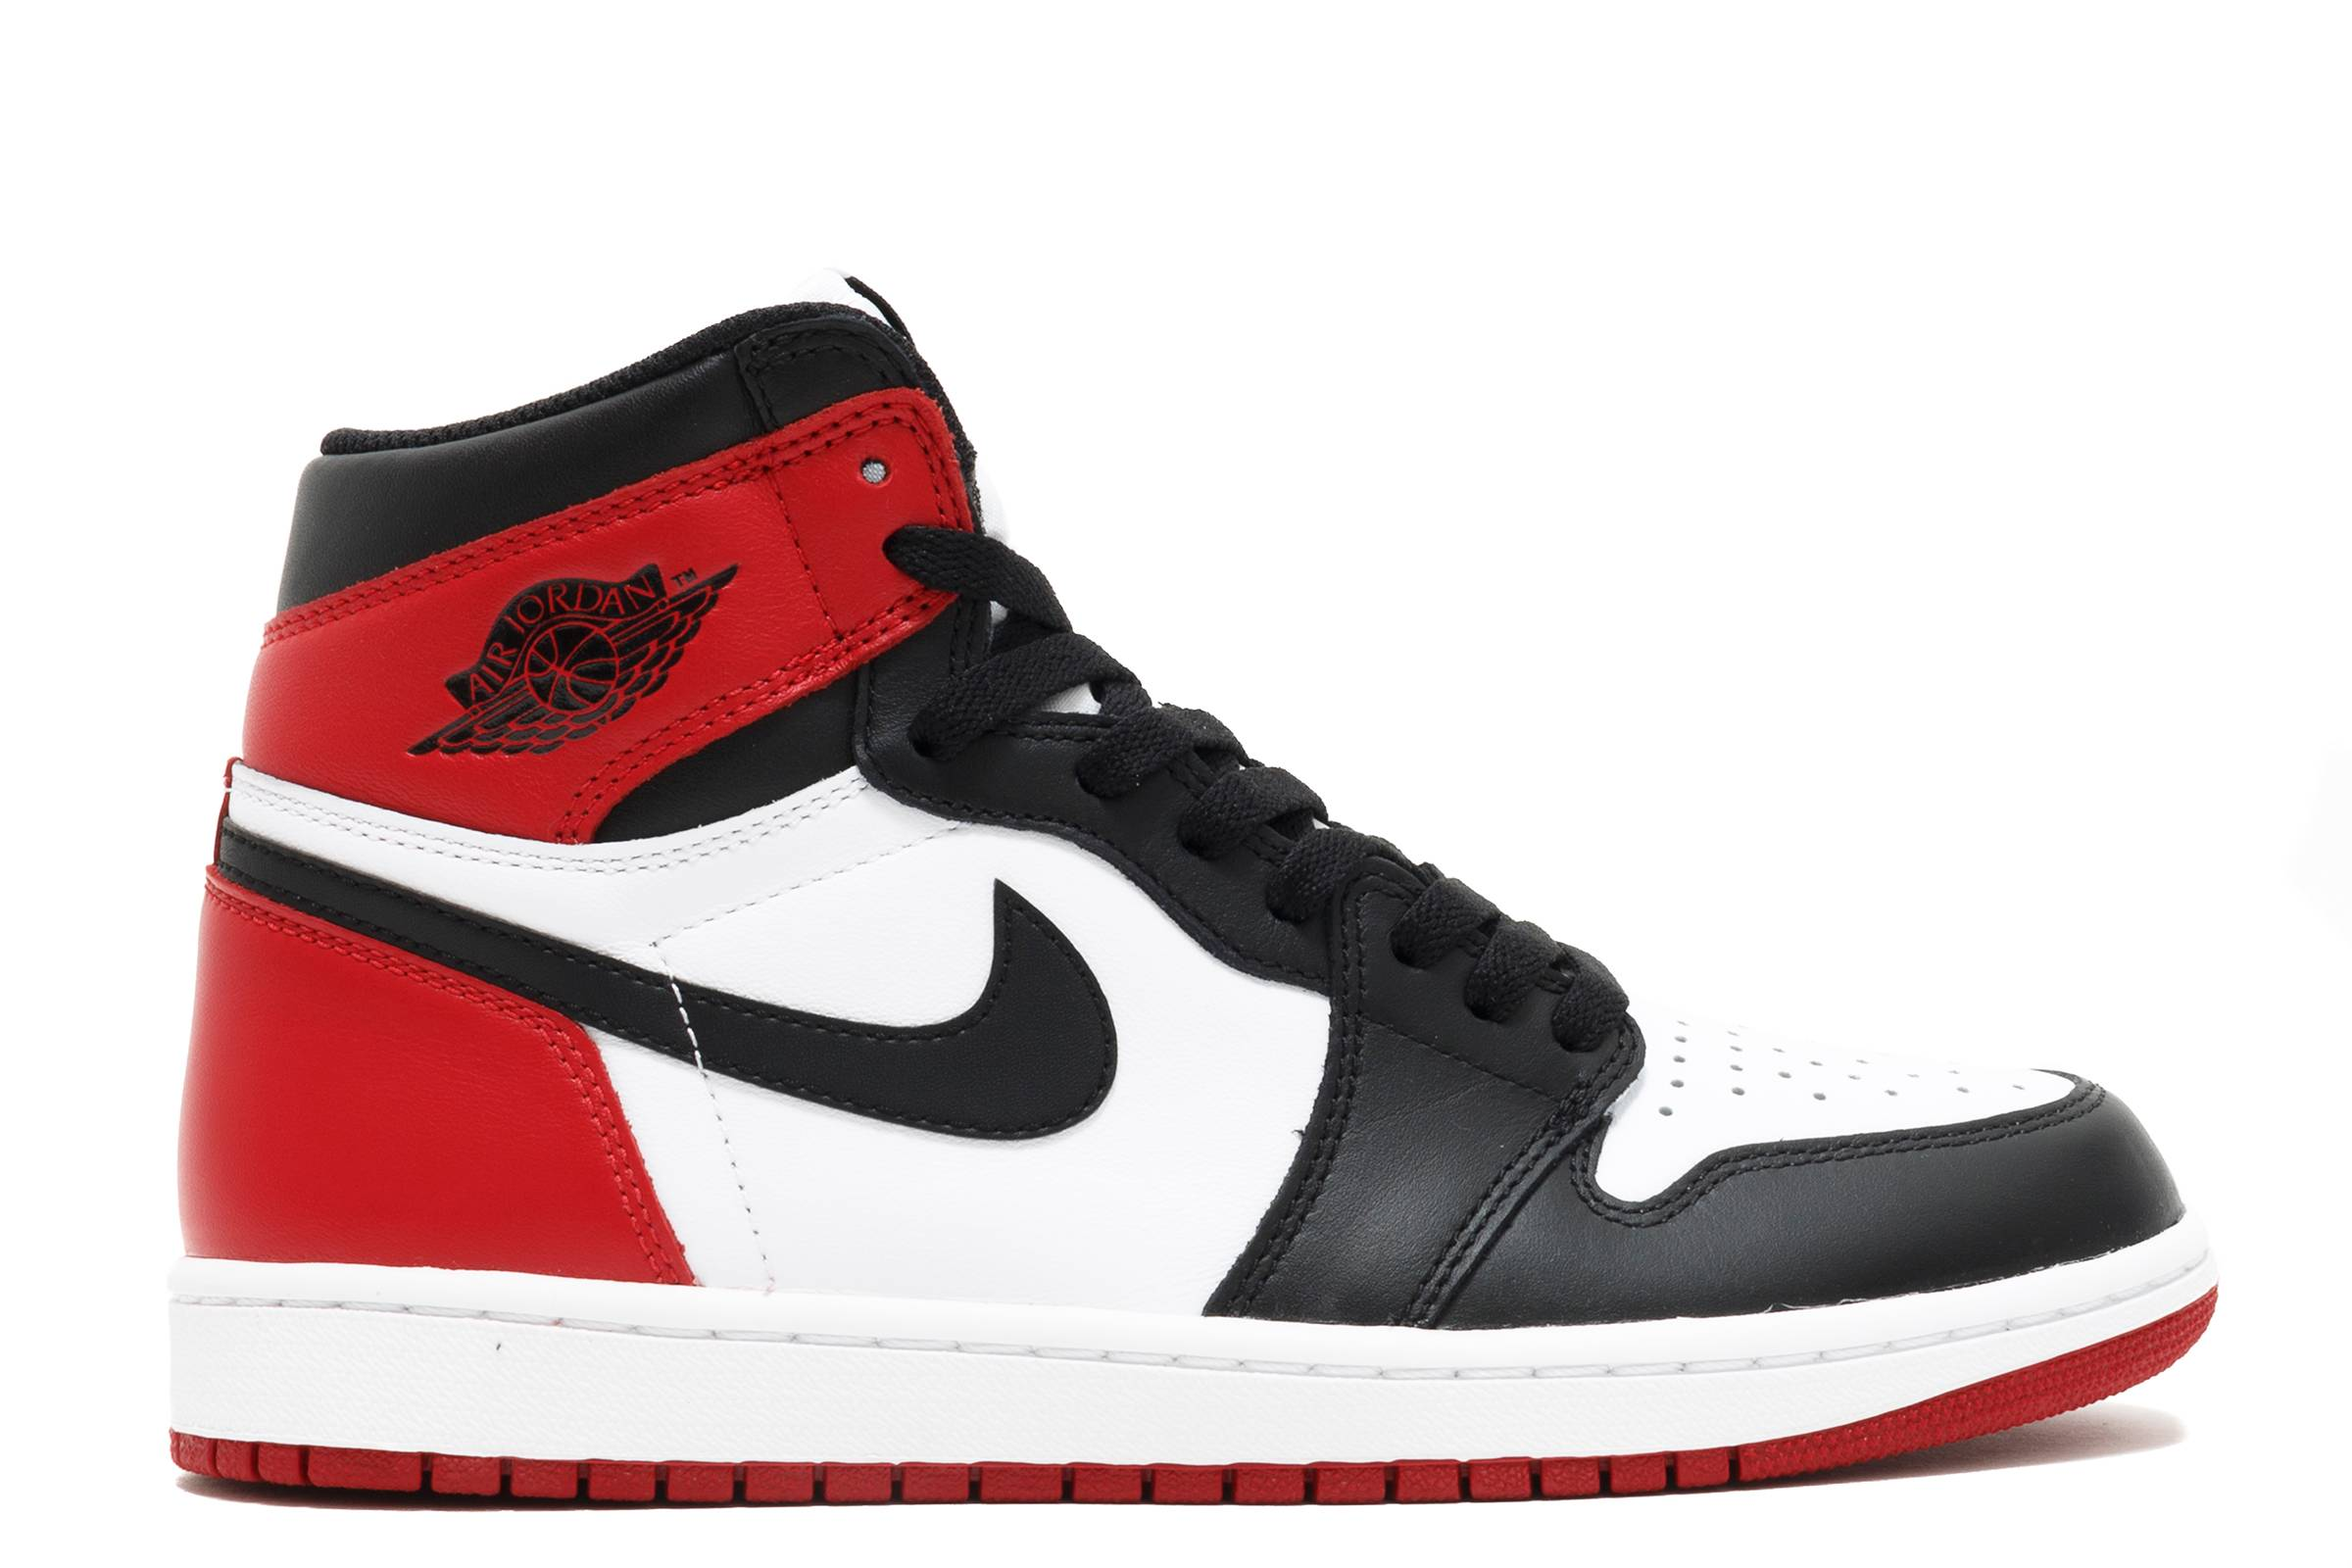 on sale 169c3 ec2de The One That Started It All  A History of the Jordan 1